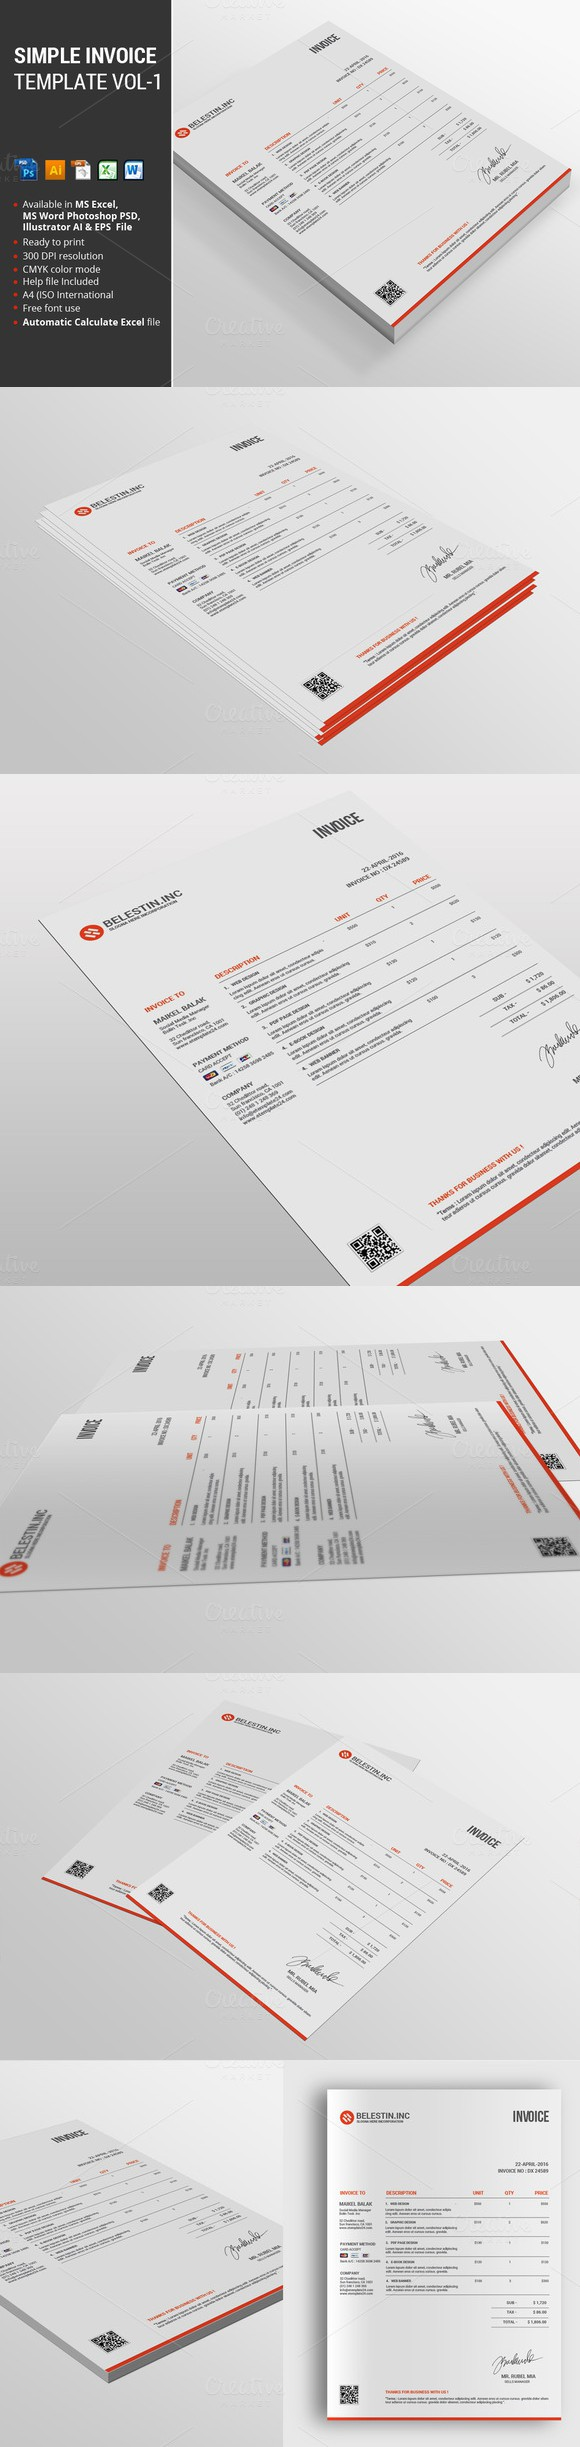 Simple Invoice Template Vol 1   Pinterest   Stationery templates and     Simple Invoice Template Vol 1